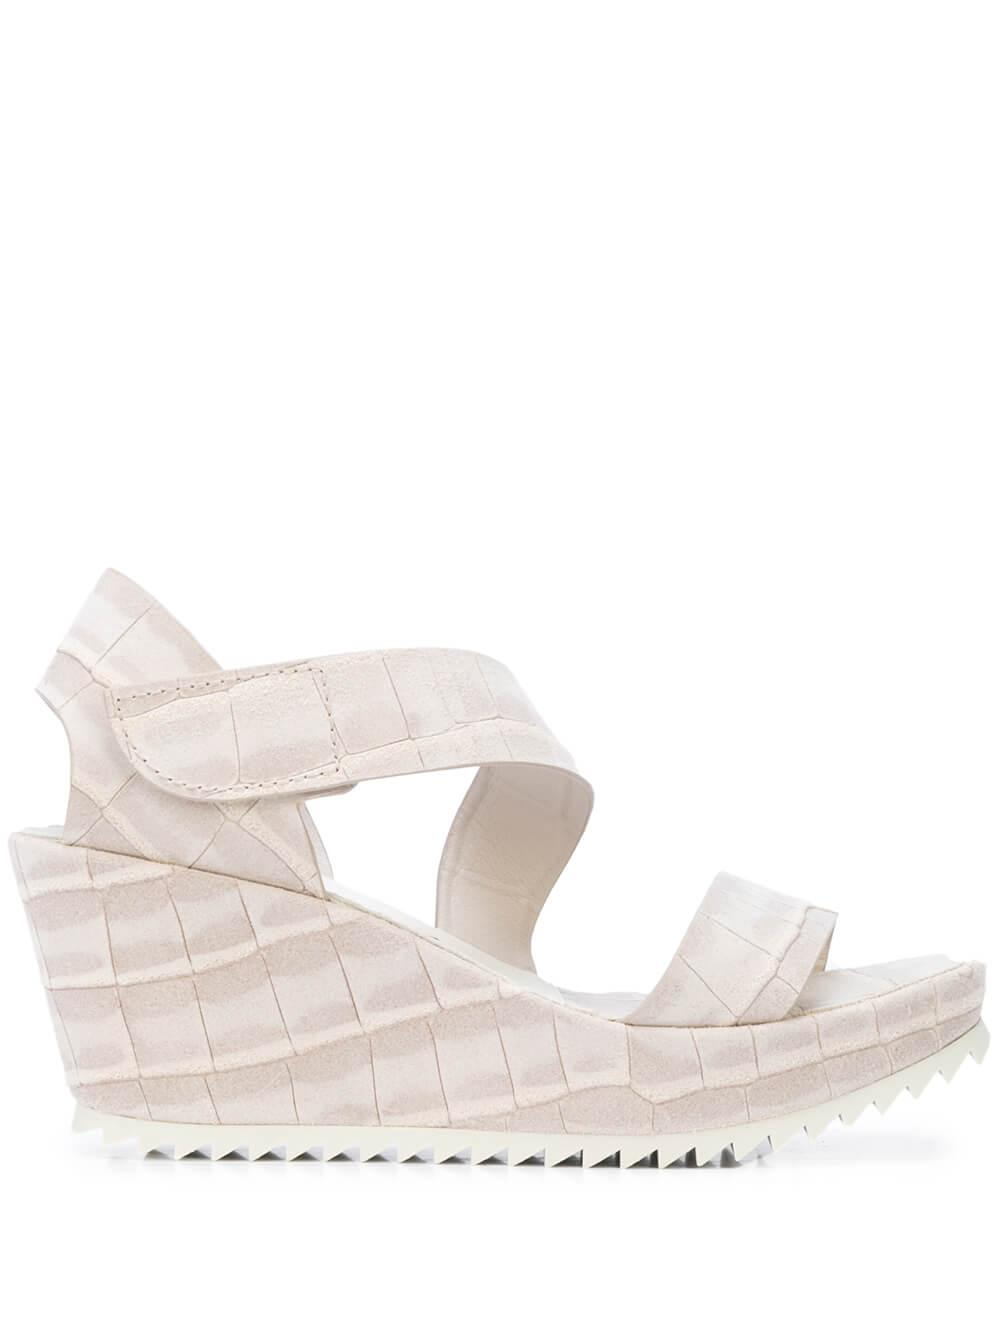 Crock Embossed Platform Wedge Sandal